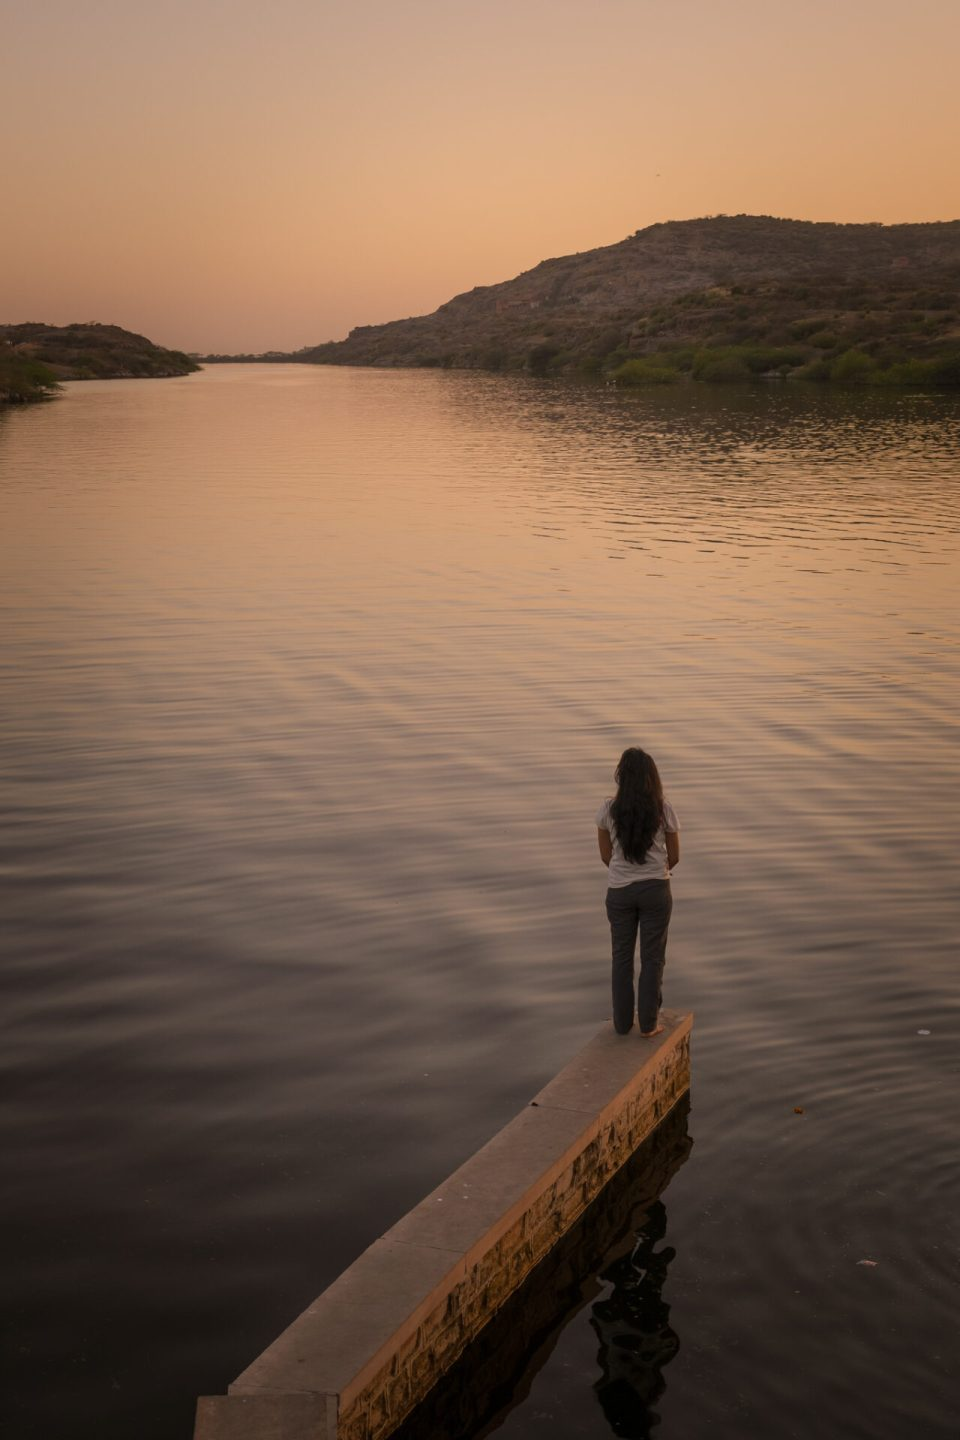 Sunset at the Kaylana Lake in Jodhpur